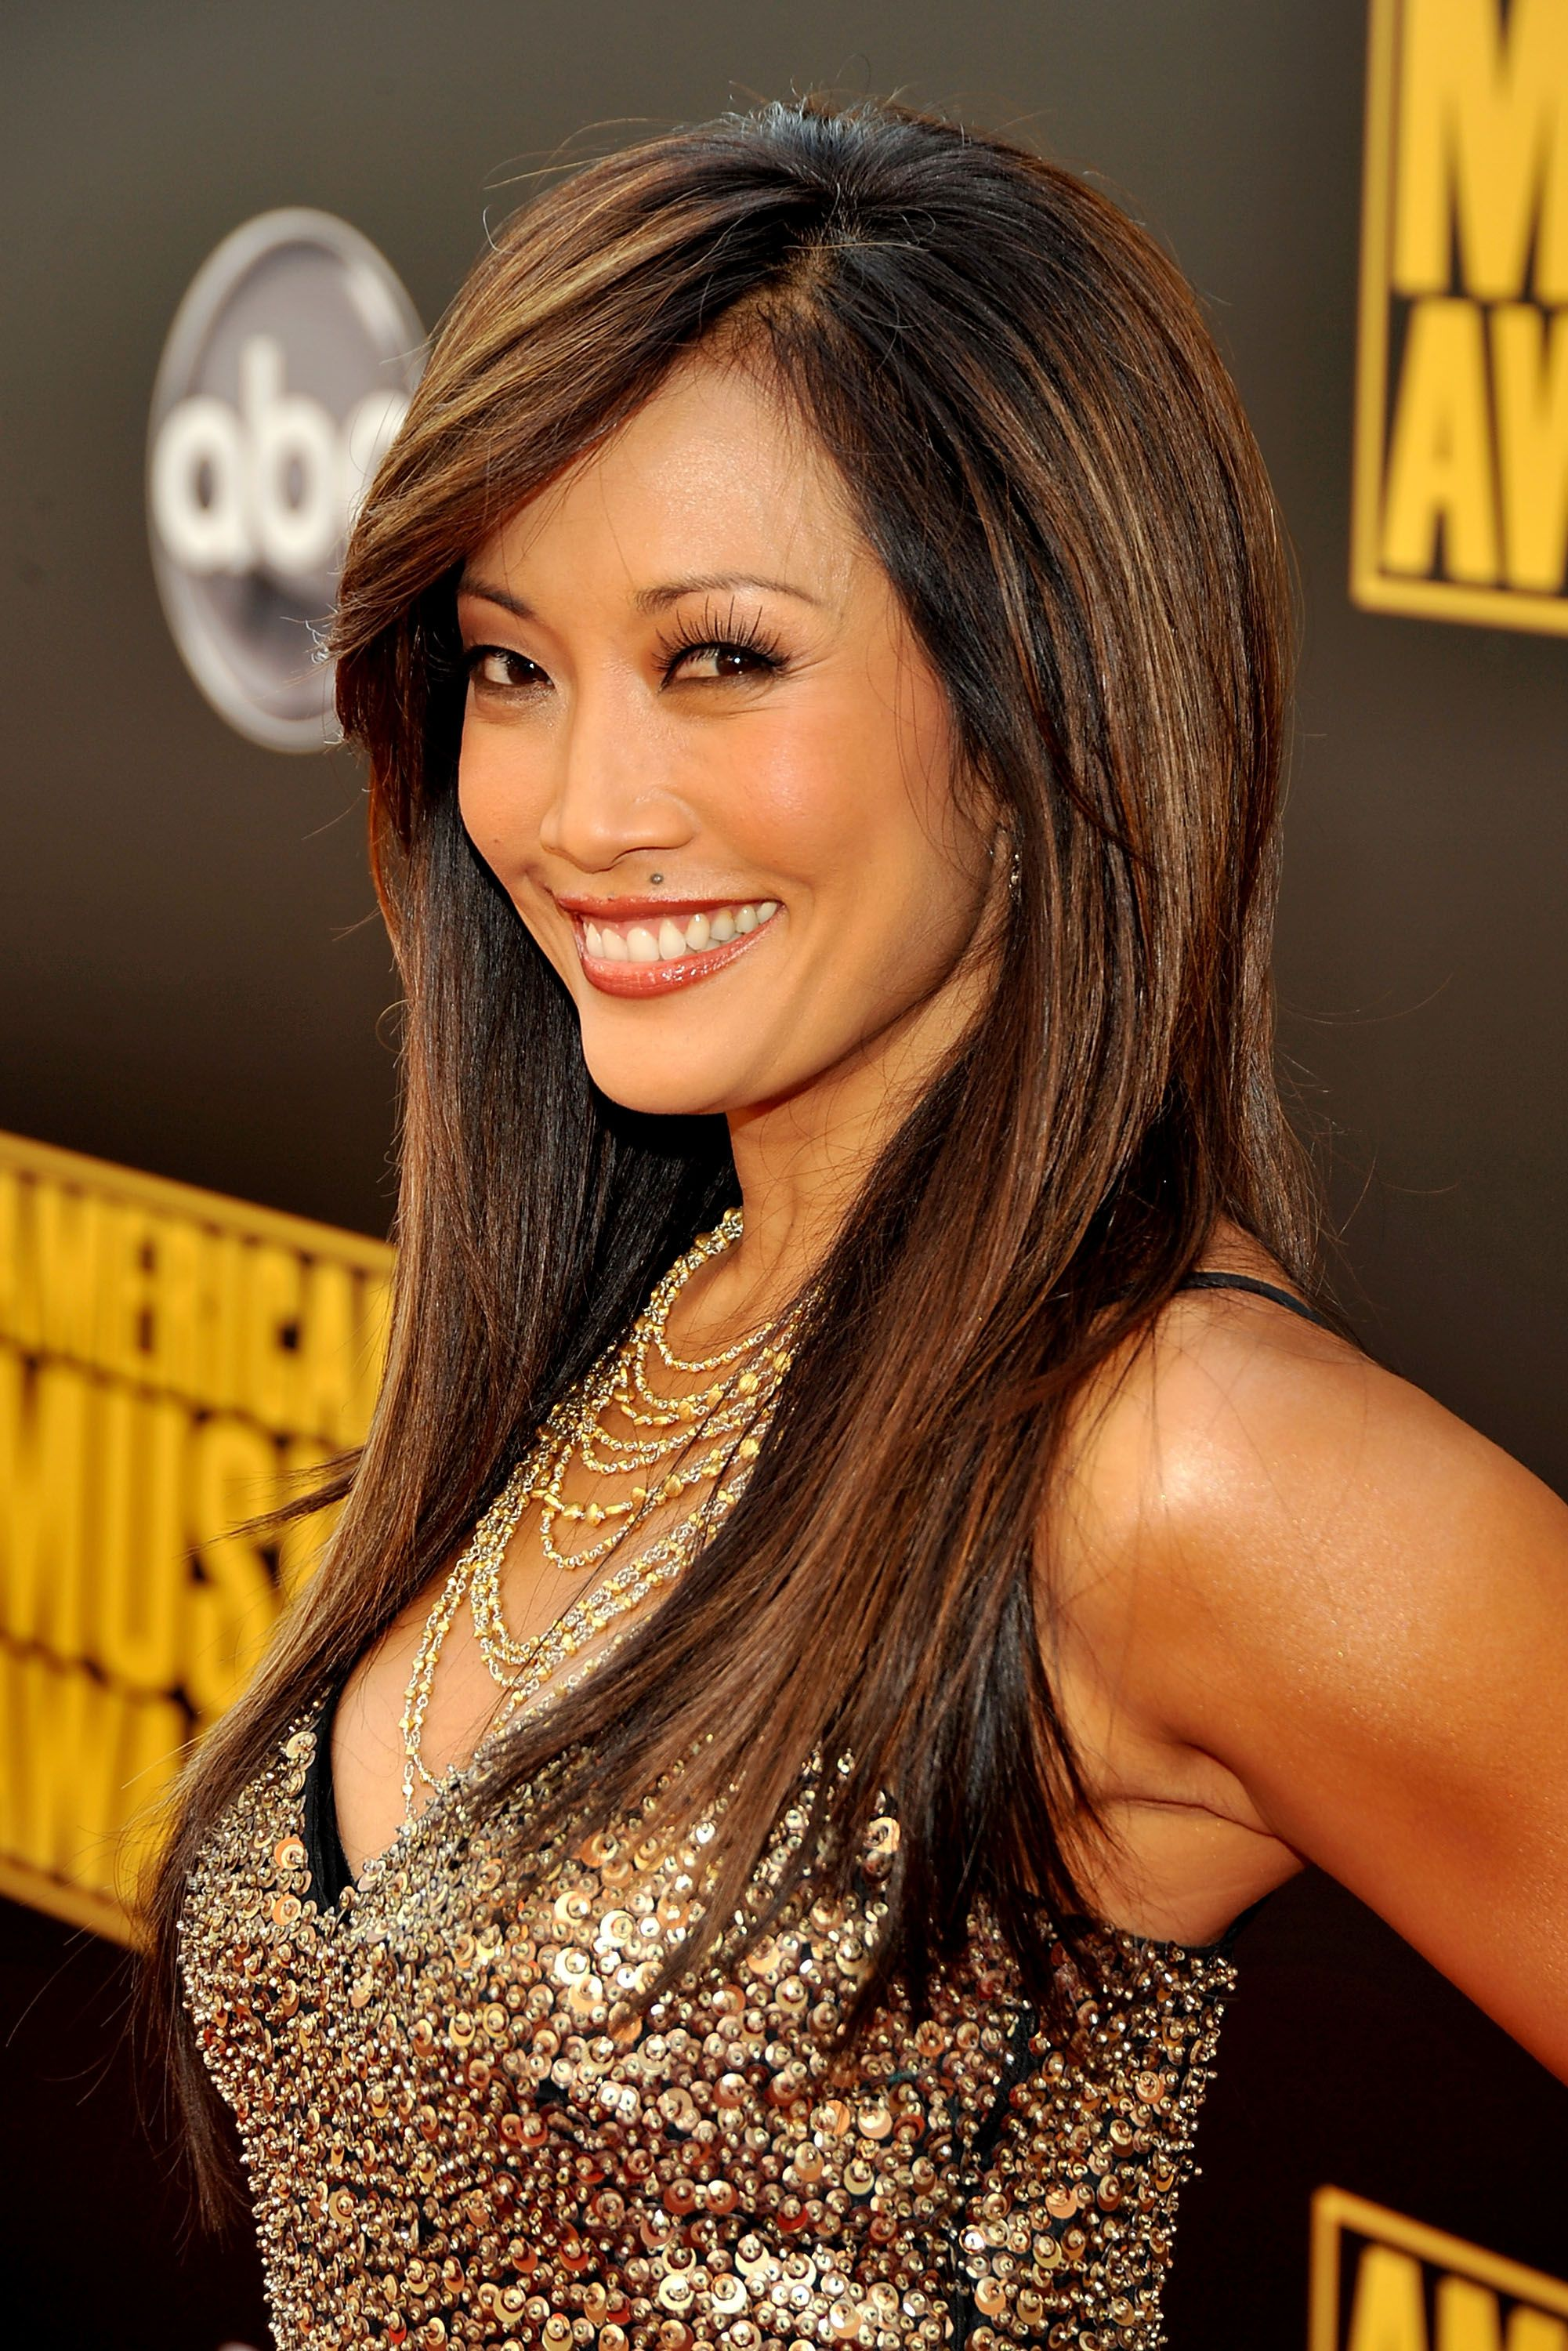 carrie ann inaba | dancing women are singing jazz music in